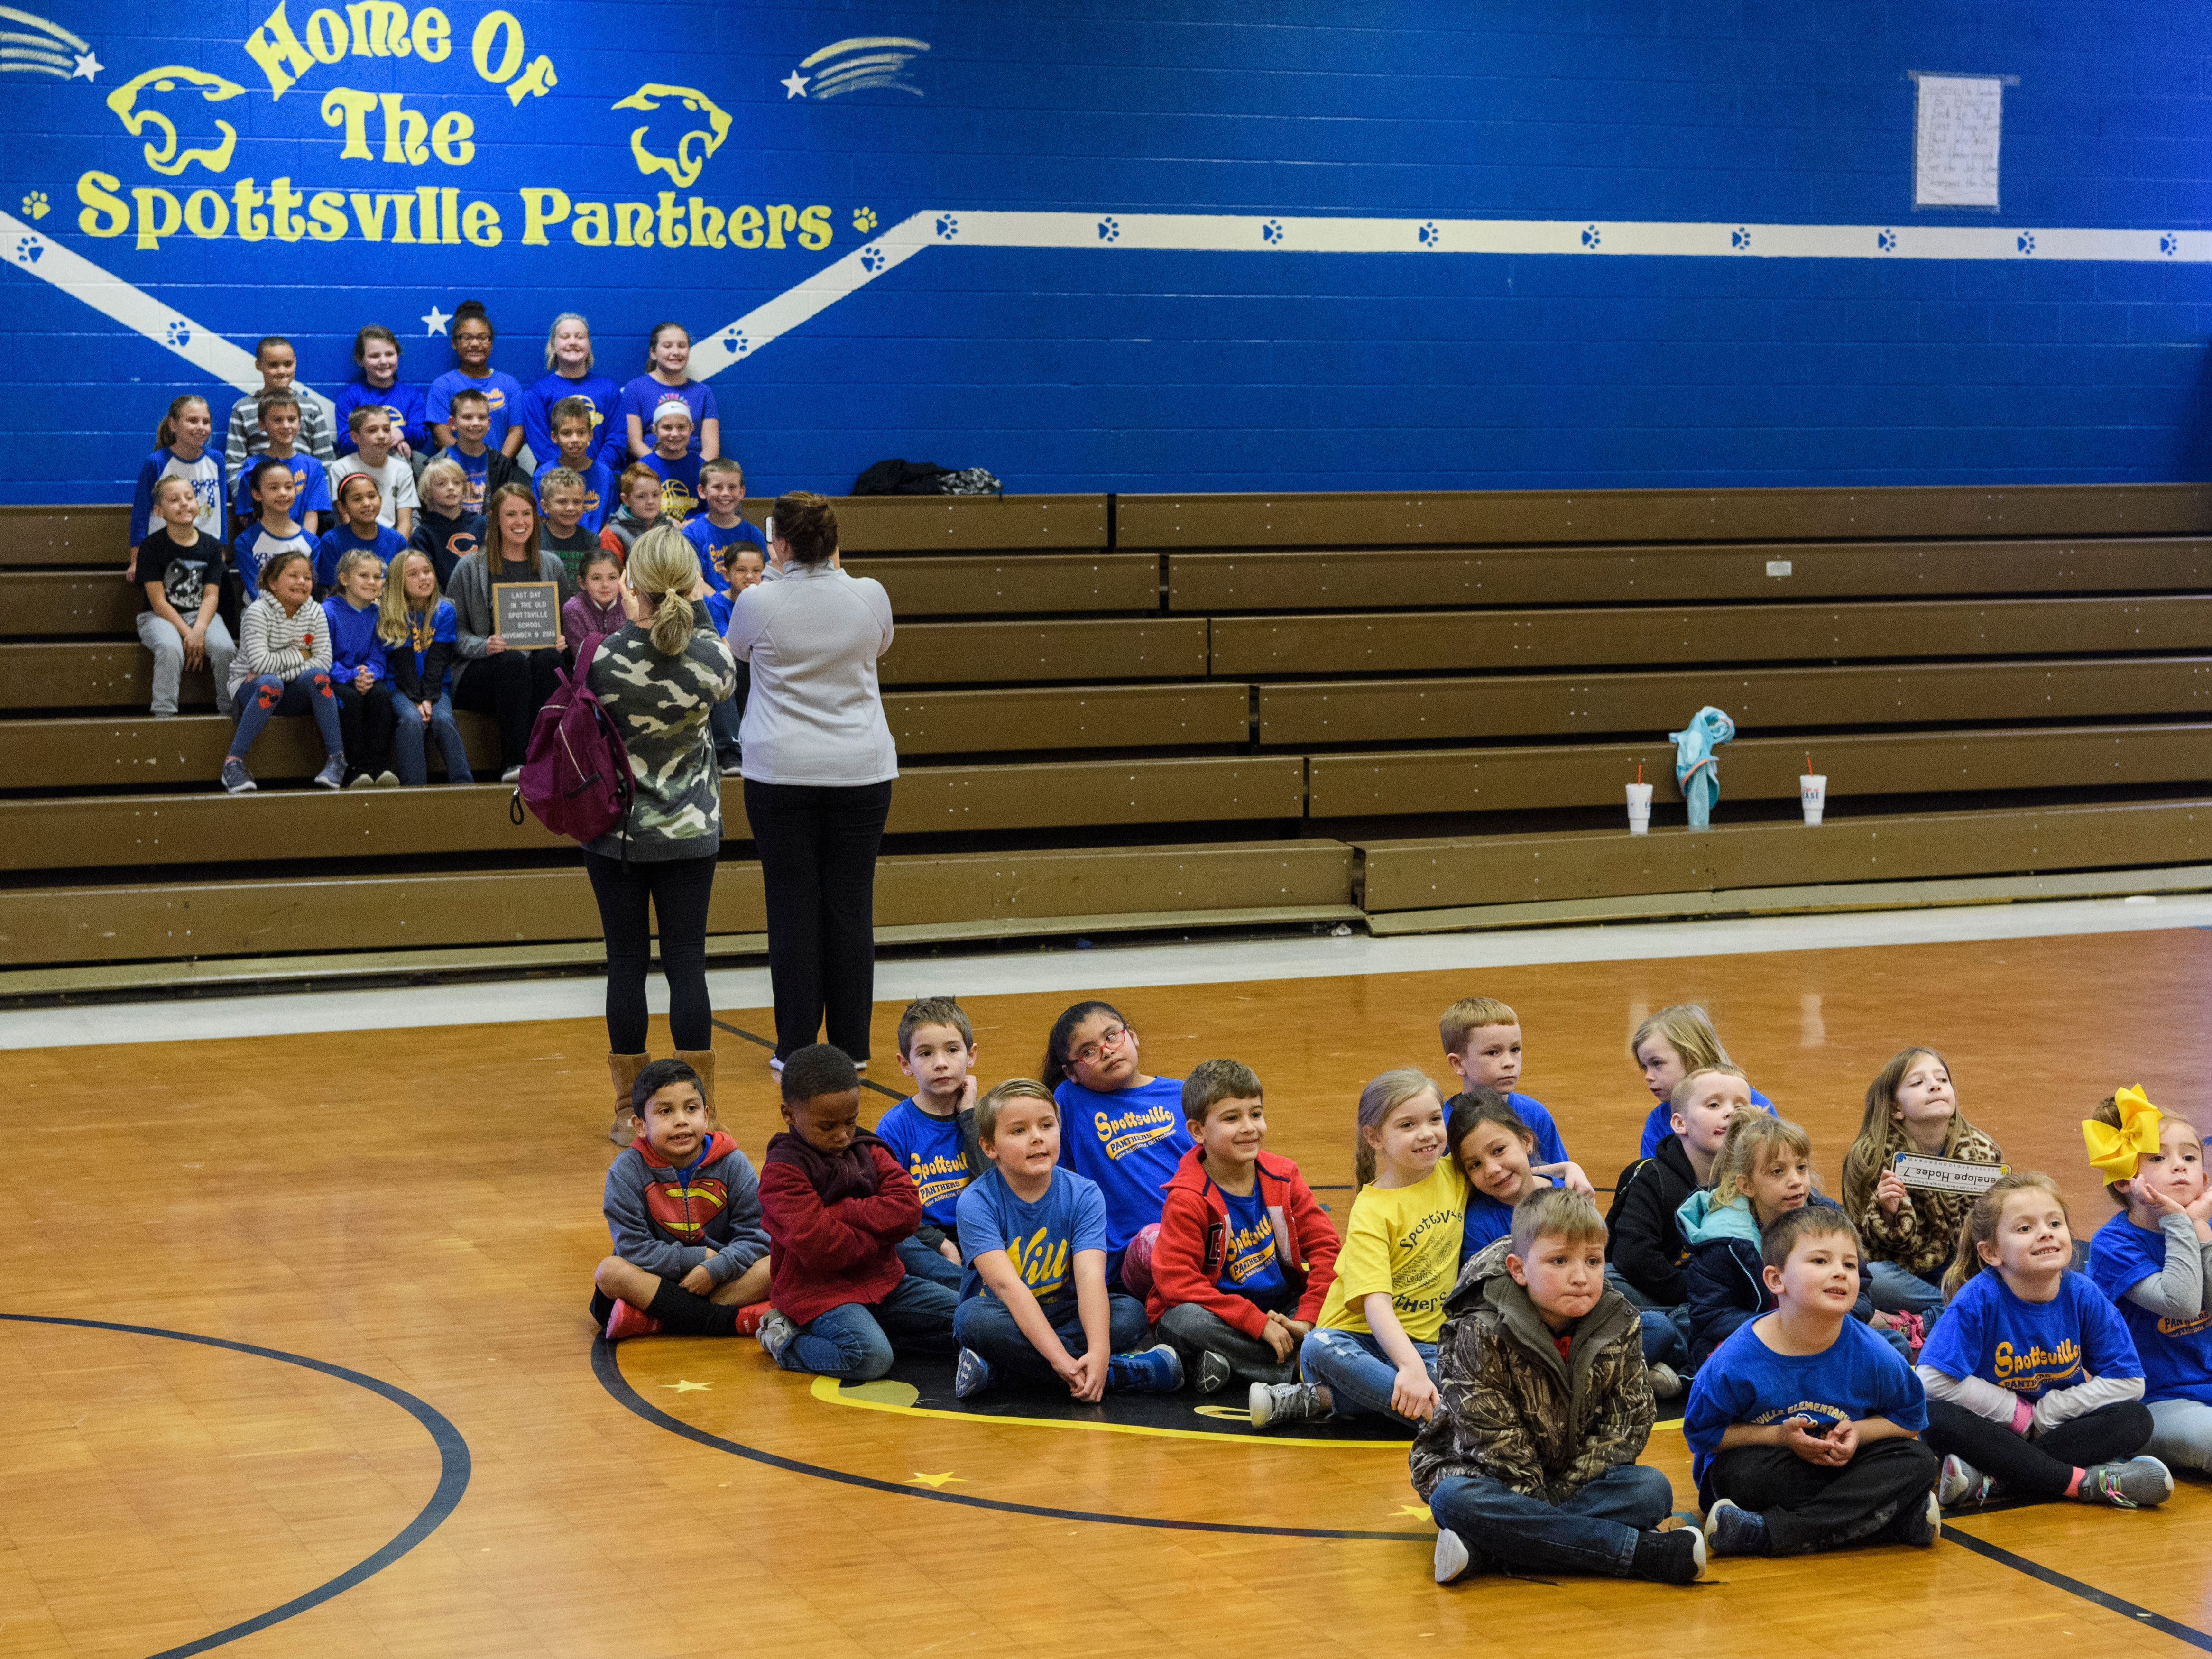 Spottsville Elementary school students take class pictures inside their old gymnasium before early dismissal starts, Friday morning, Nov. 9, 2018. They moved into the new school building, located right beside the old one, Monday morning, Nov. 12.